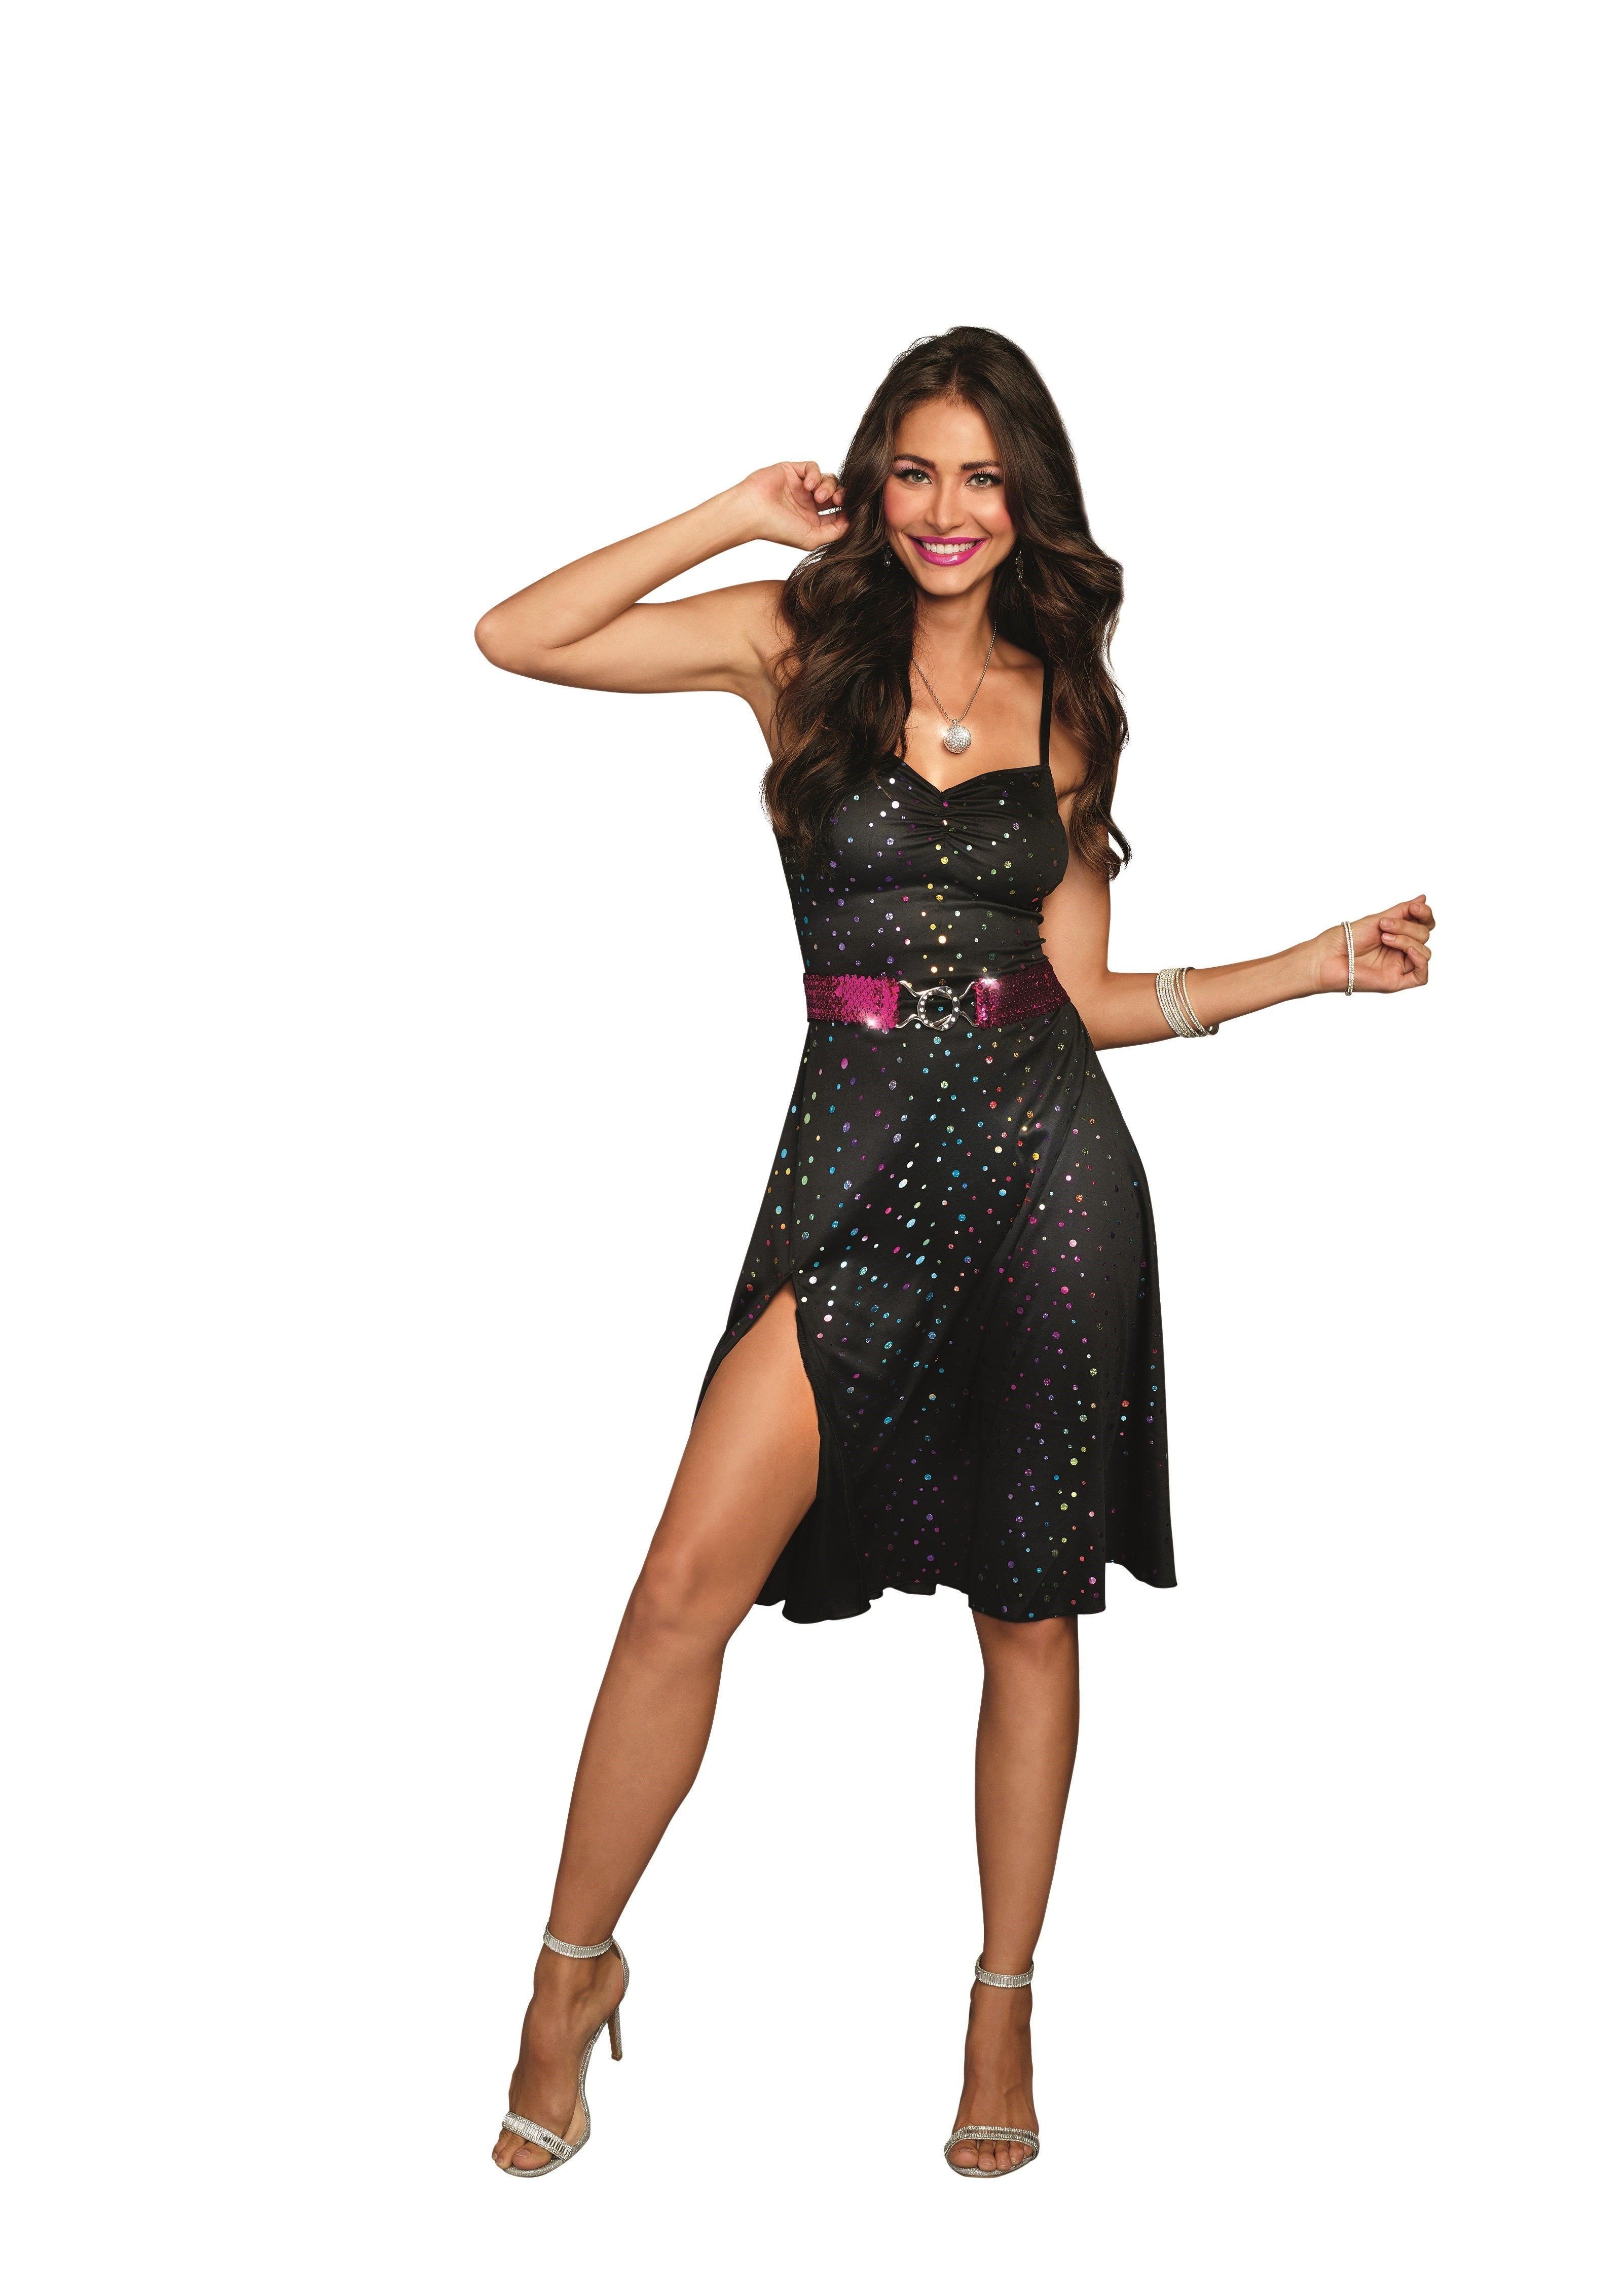 Girls Hologram Disco Diva Costume by Charades